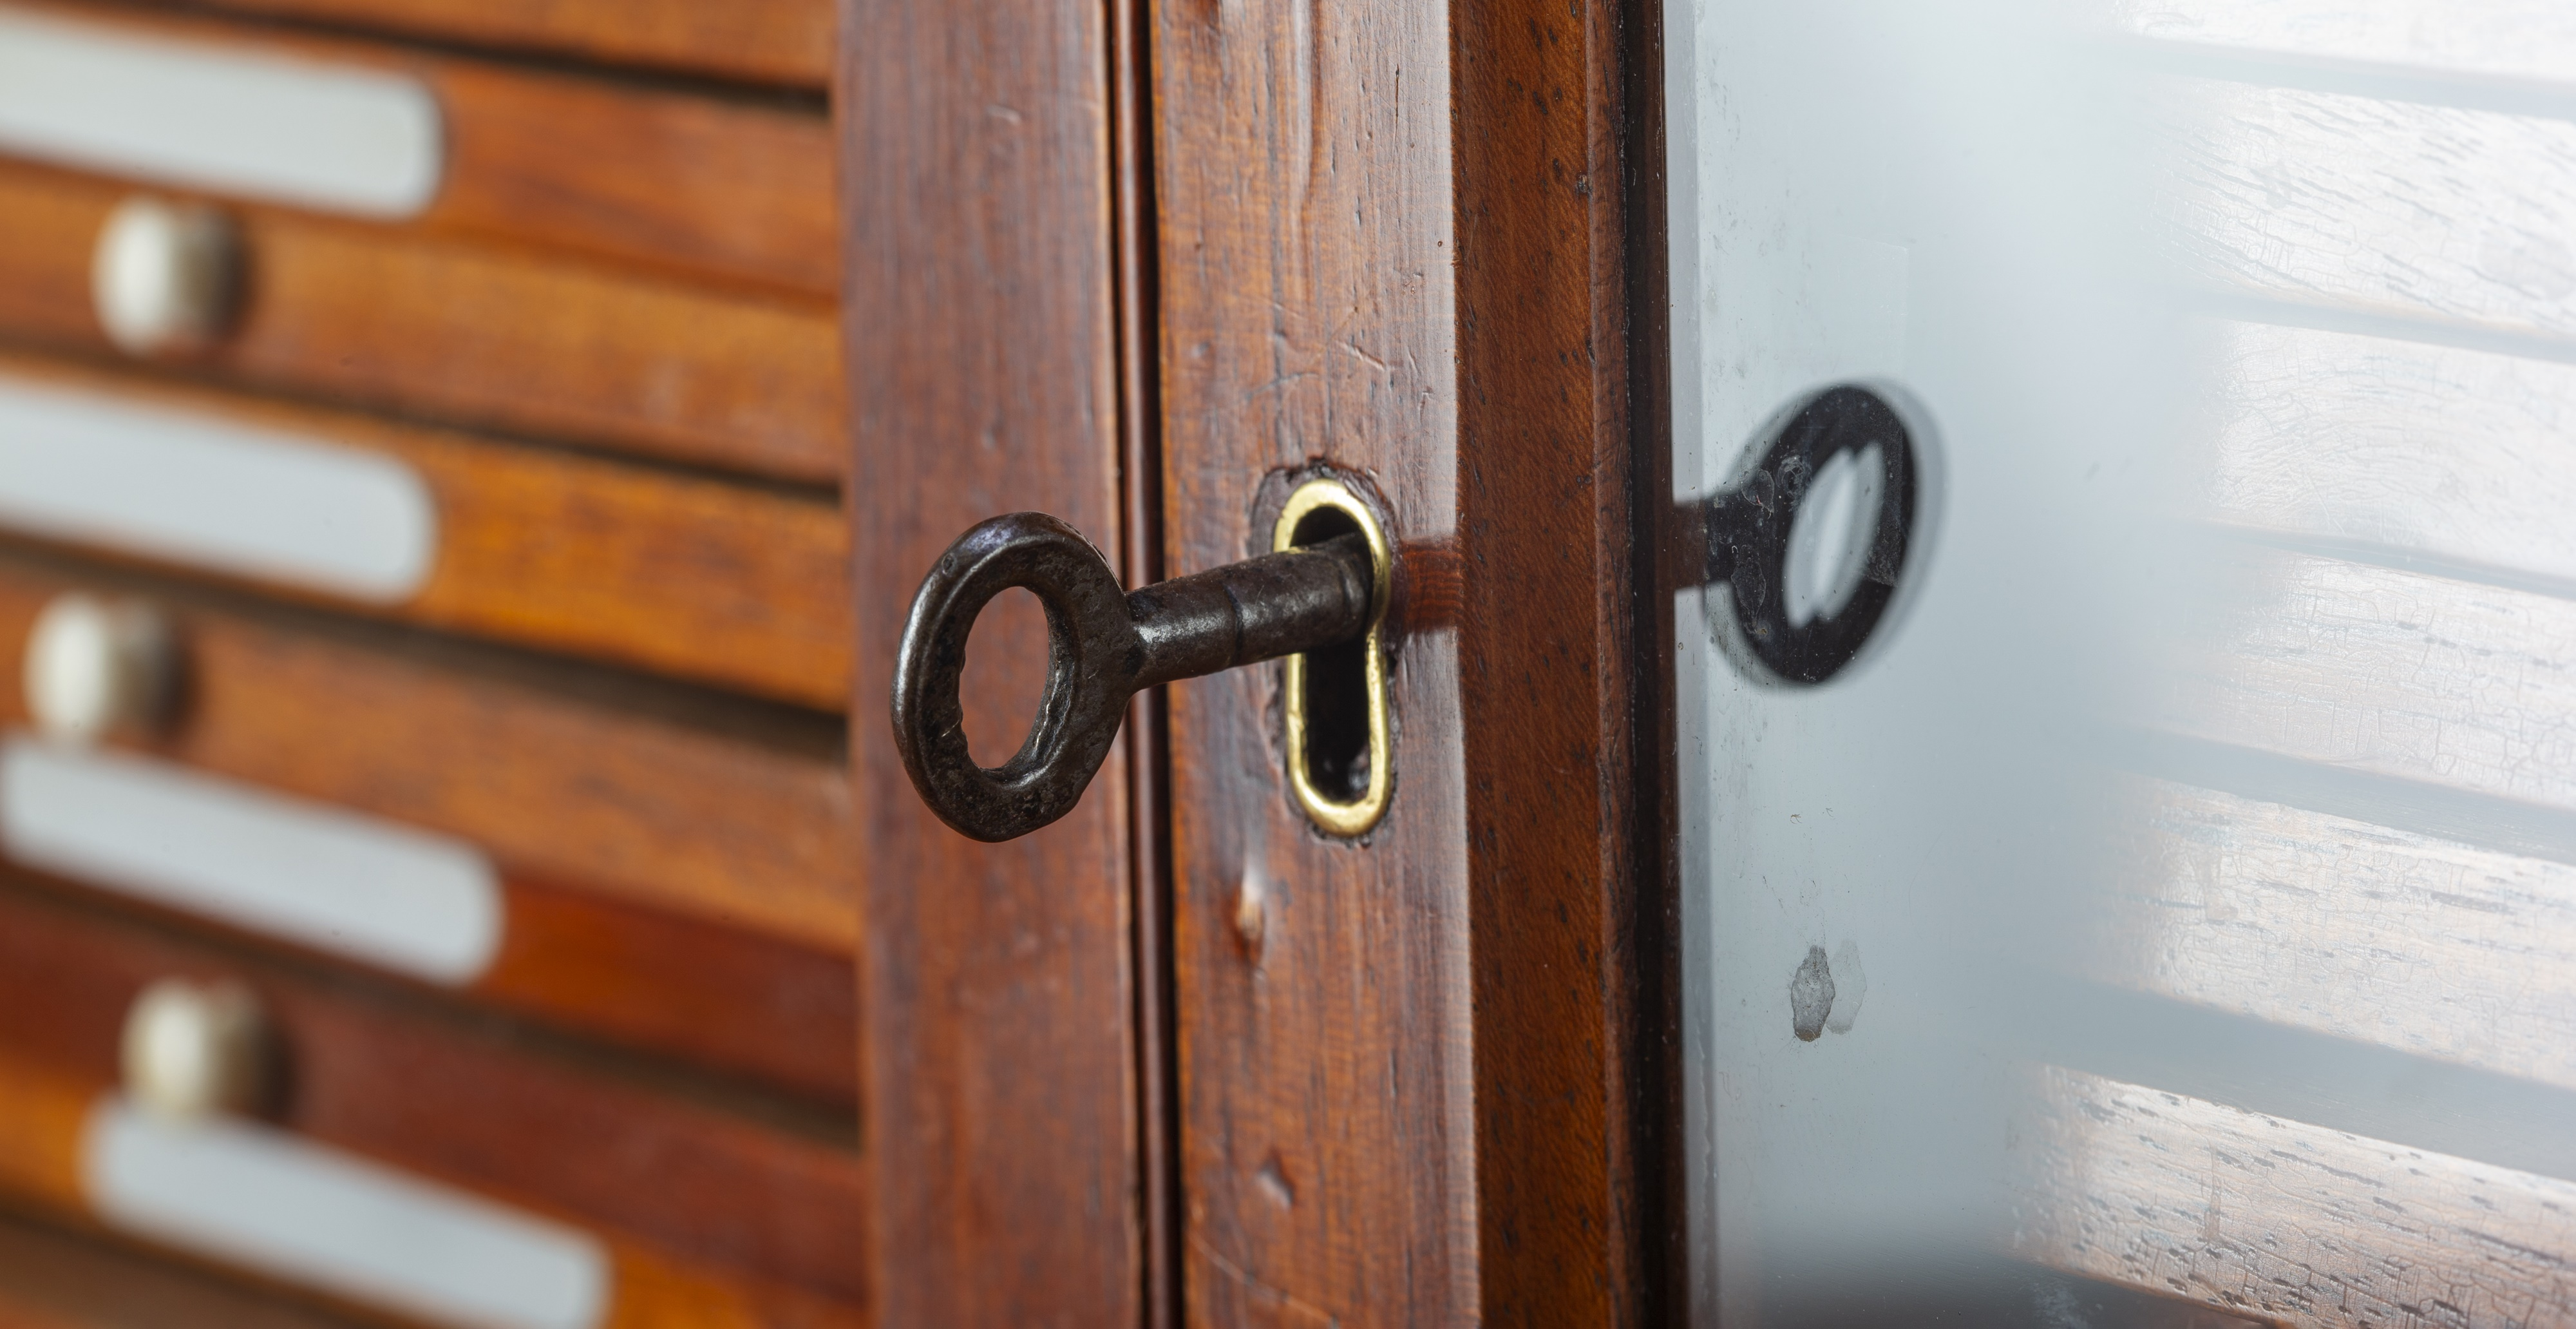 A lock with a key inserted in the door of a victorian style microscope cabinet to symbolically represent the mutual trust set out in the terms in conditions that follow